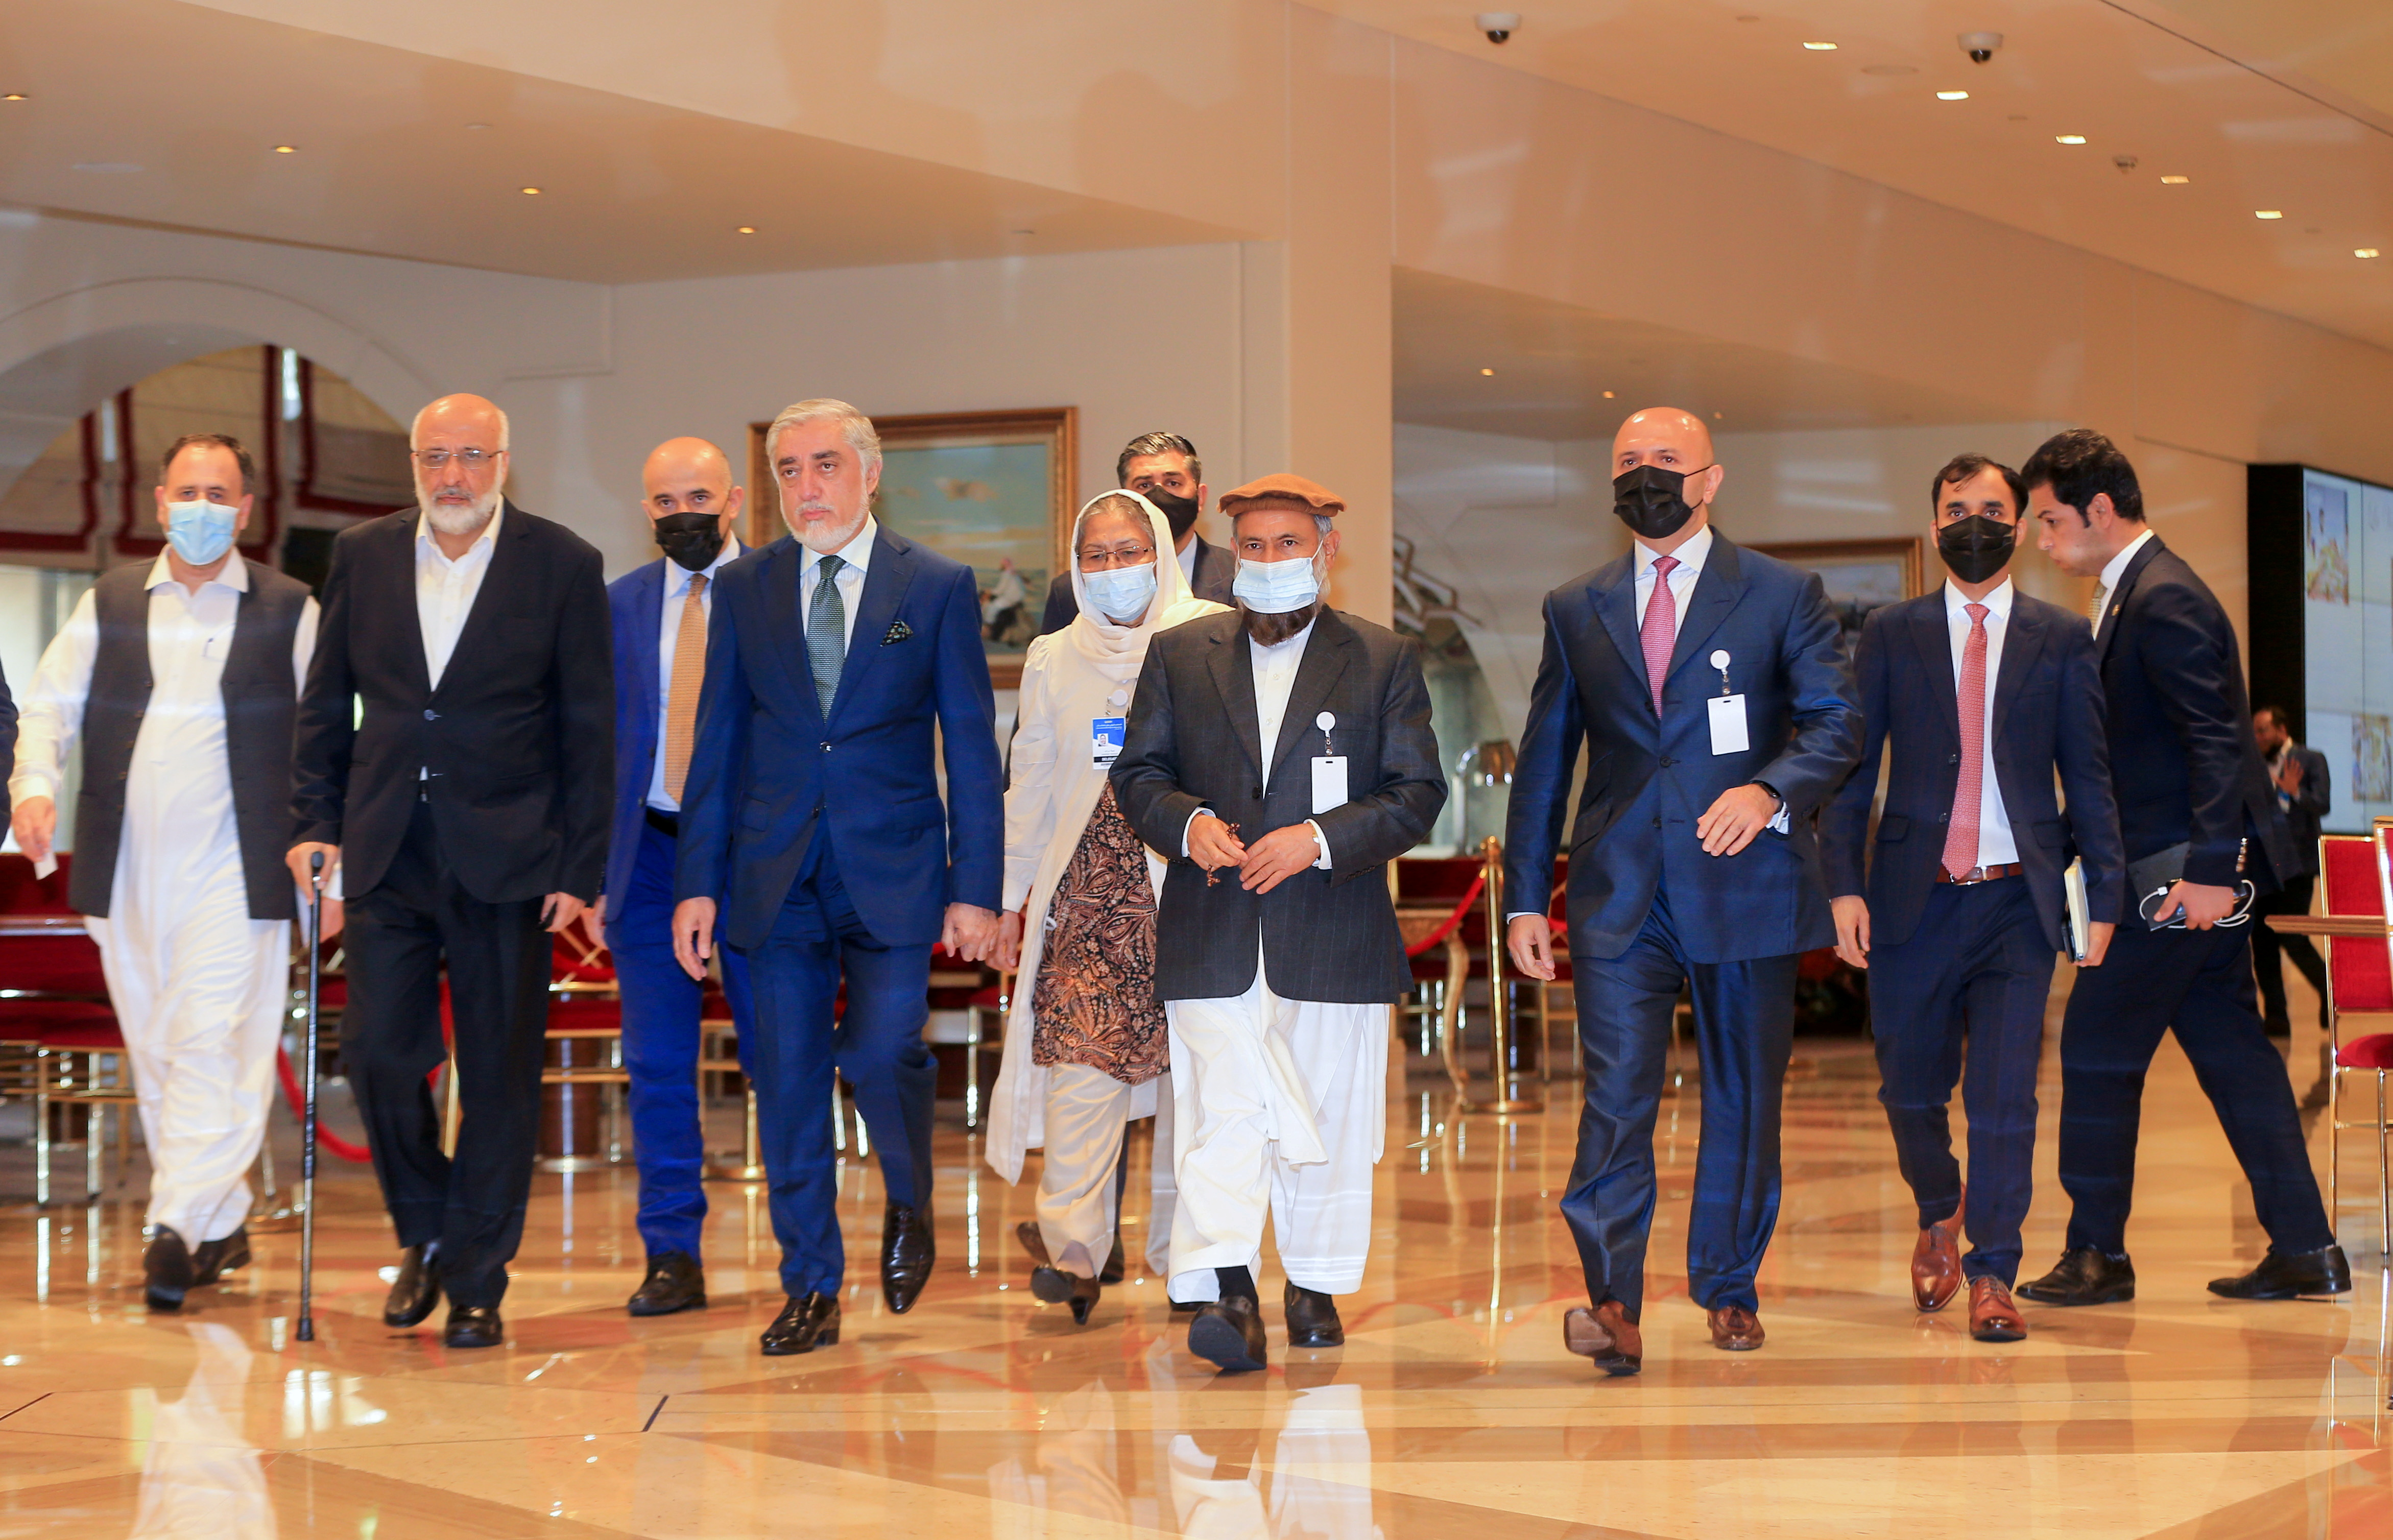 Abdullah Abdullah, the Chairman of Afghanistan's High Council for National Reconciliation, arrives for Afghan peace talks in Doha, Qatar, August 12, 2021. REUTERS/Hussein Sayed